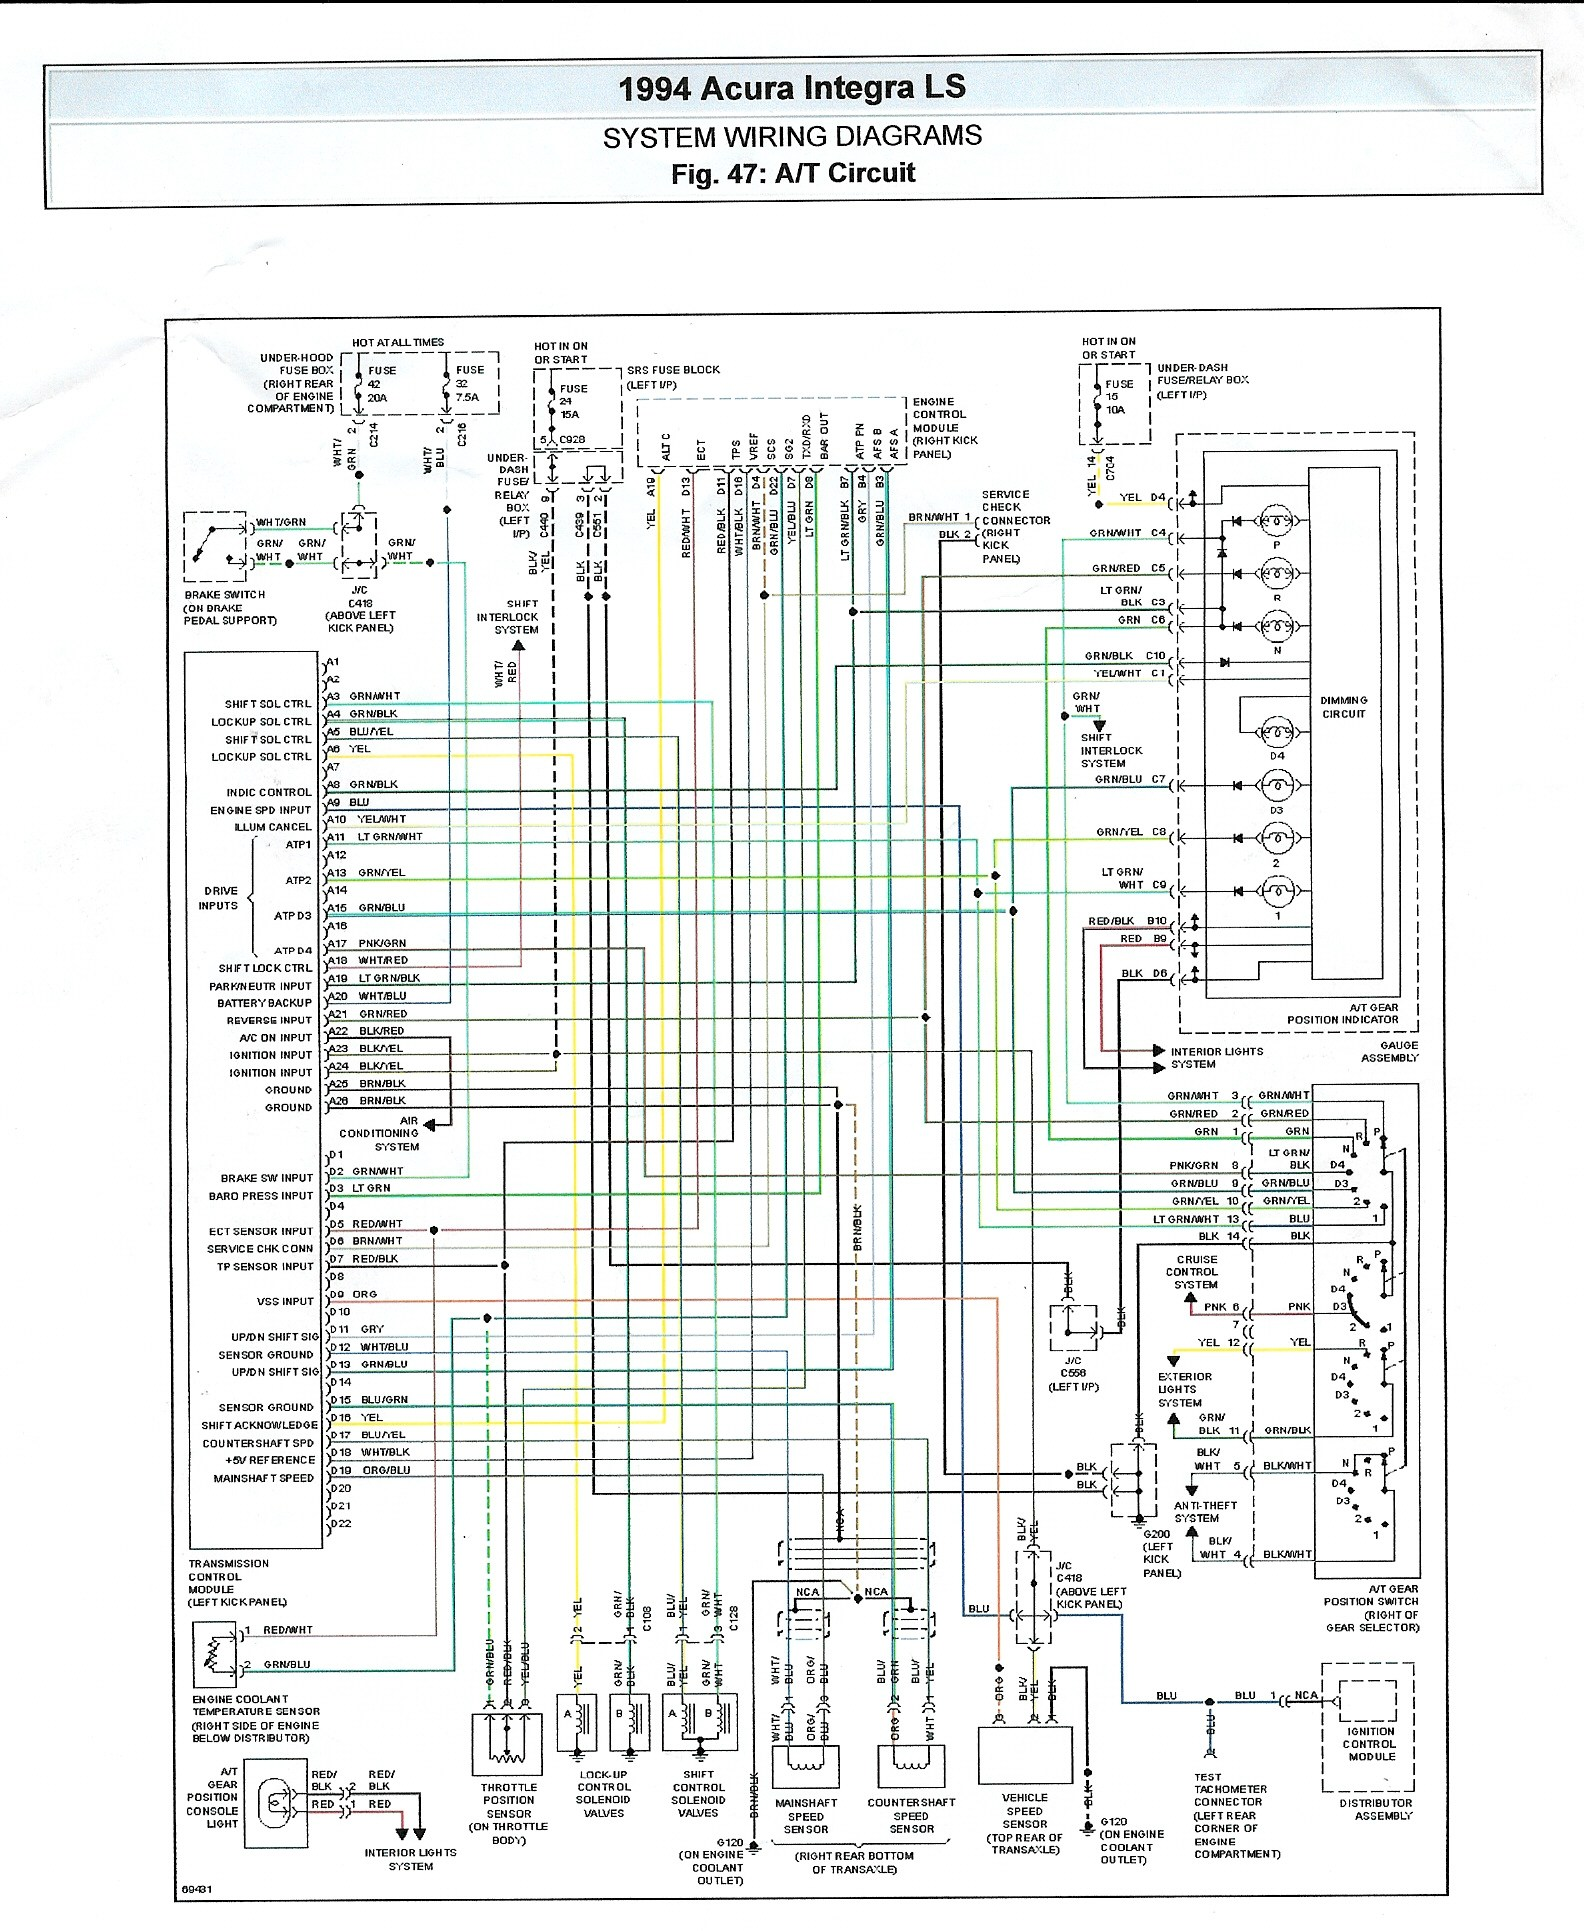 [SCHEMATICS_4NL]  CG_1821] 1991 Acura Integra Engine Wiring Diagram Download Diagram | 1991 Acura Integra Ls Radio Wiring Diagrams |  | Kook Scata Ologi Cana Greas Hendil Phil Cajos Hendil Mohammedshrine Librar  Wiring 101